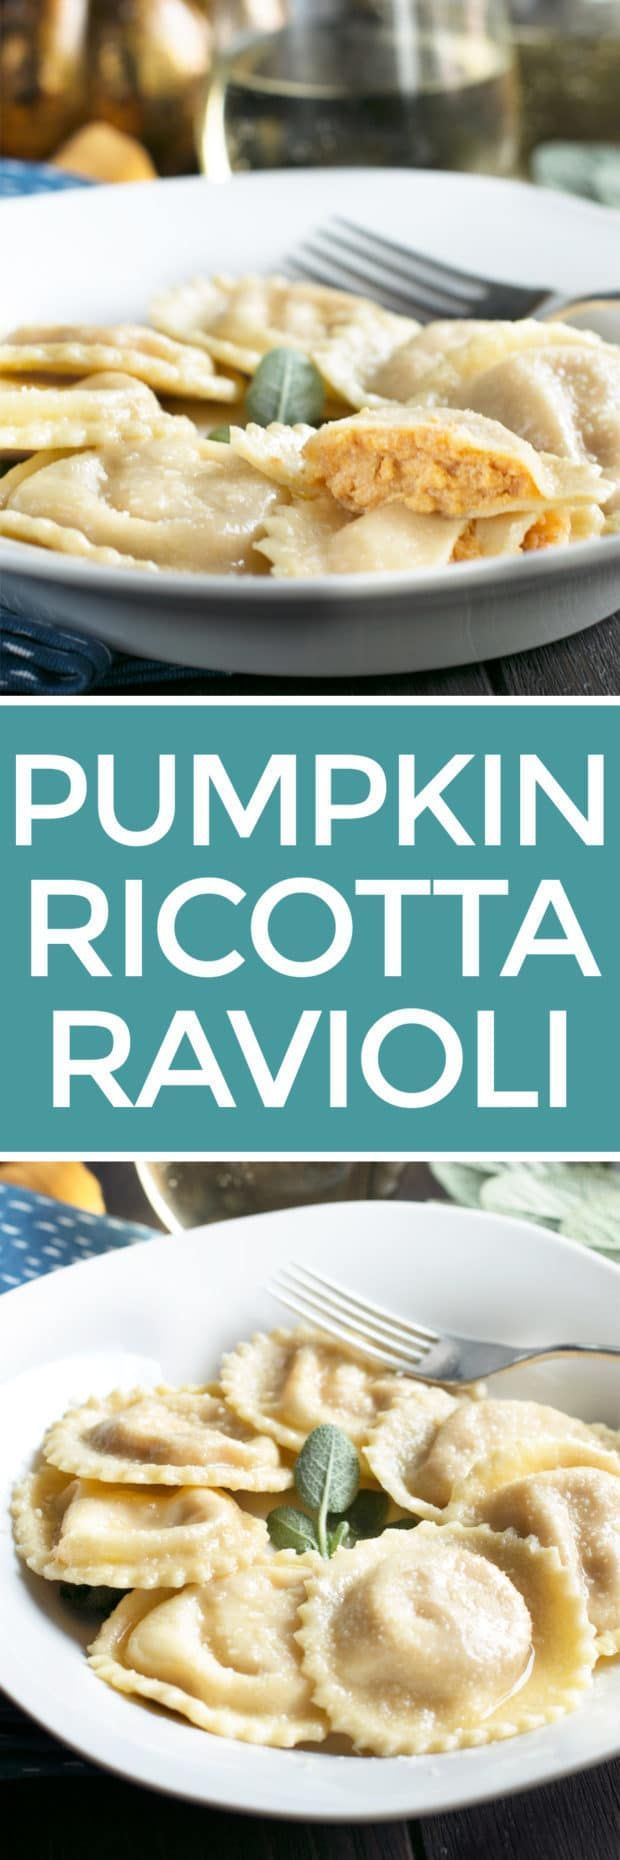 Pumpkin Ricotta Ravioli with Brown Butter Sage Sauce is an elegant meal that every fall dinner should feature. The rich pumpkin ricotta filling plays off the silky brown butter sage sauce, all with fresh homemade pasta! Don't let the homemade pasta intimidate you - it really is easier than you think to create. Pumpkin Ricotta Ravioli with Brown Butter Sage Sauce | cakenknife.com #pumpkin #pasta #recipe